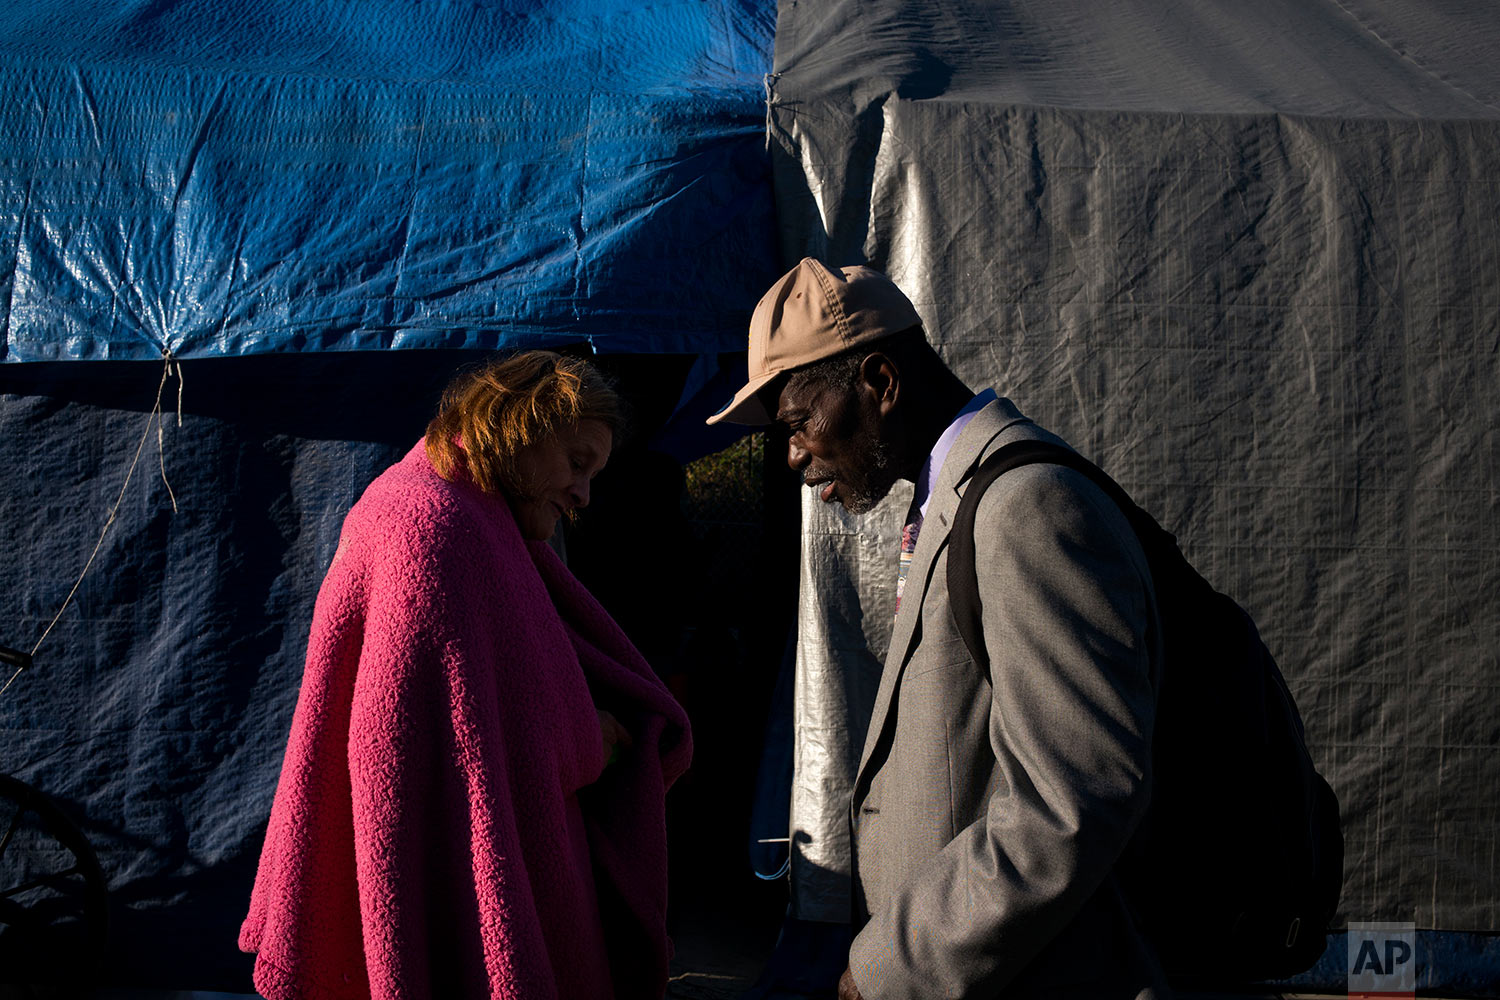 Two homeless people, Tammy Stephen, 54, left, and Bennie Koffa, 66, walk past each other at Camp Second Chance, a city-sanctioned homeless encampment, Tuesday, Sept. 26, 2017, in Seattle. Against the backdrop of its booming economy, the West Coast is experiencing another type of boom_a massive surge in homeless people living on the streets that in many places is beginning to overwhelm the ability of local governments to deal with it. (AP Photo/Jae C. Hong)